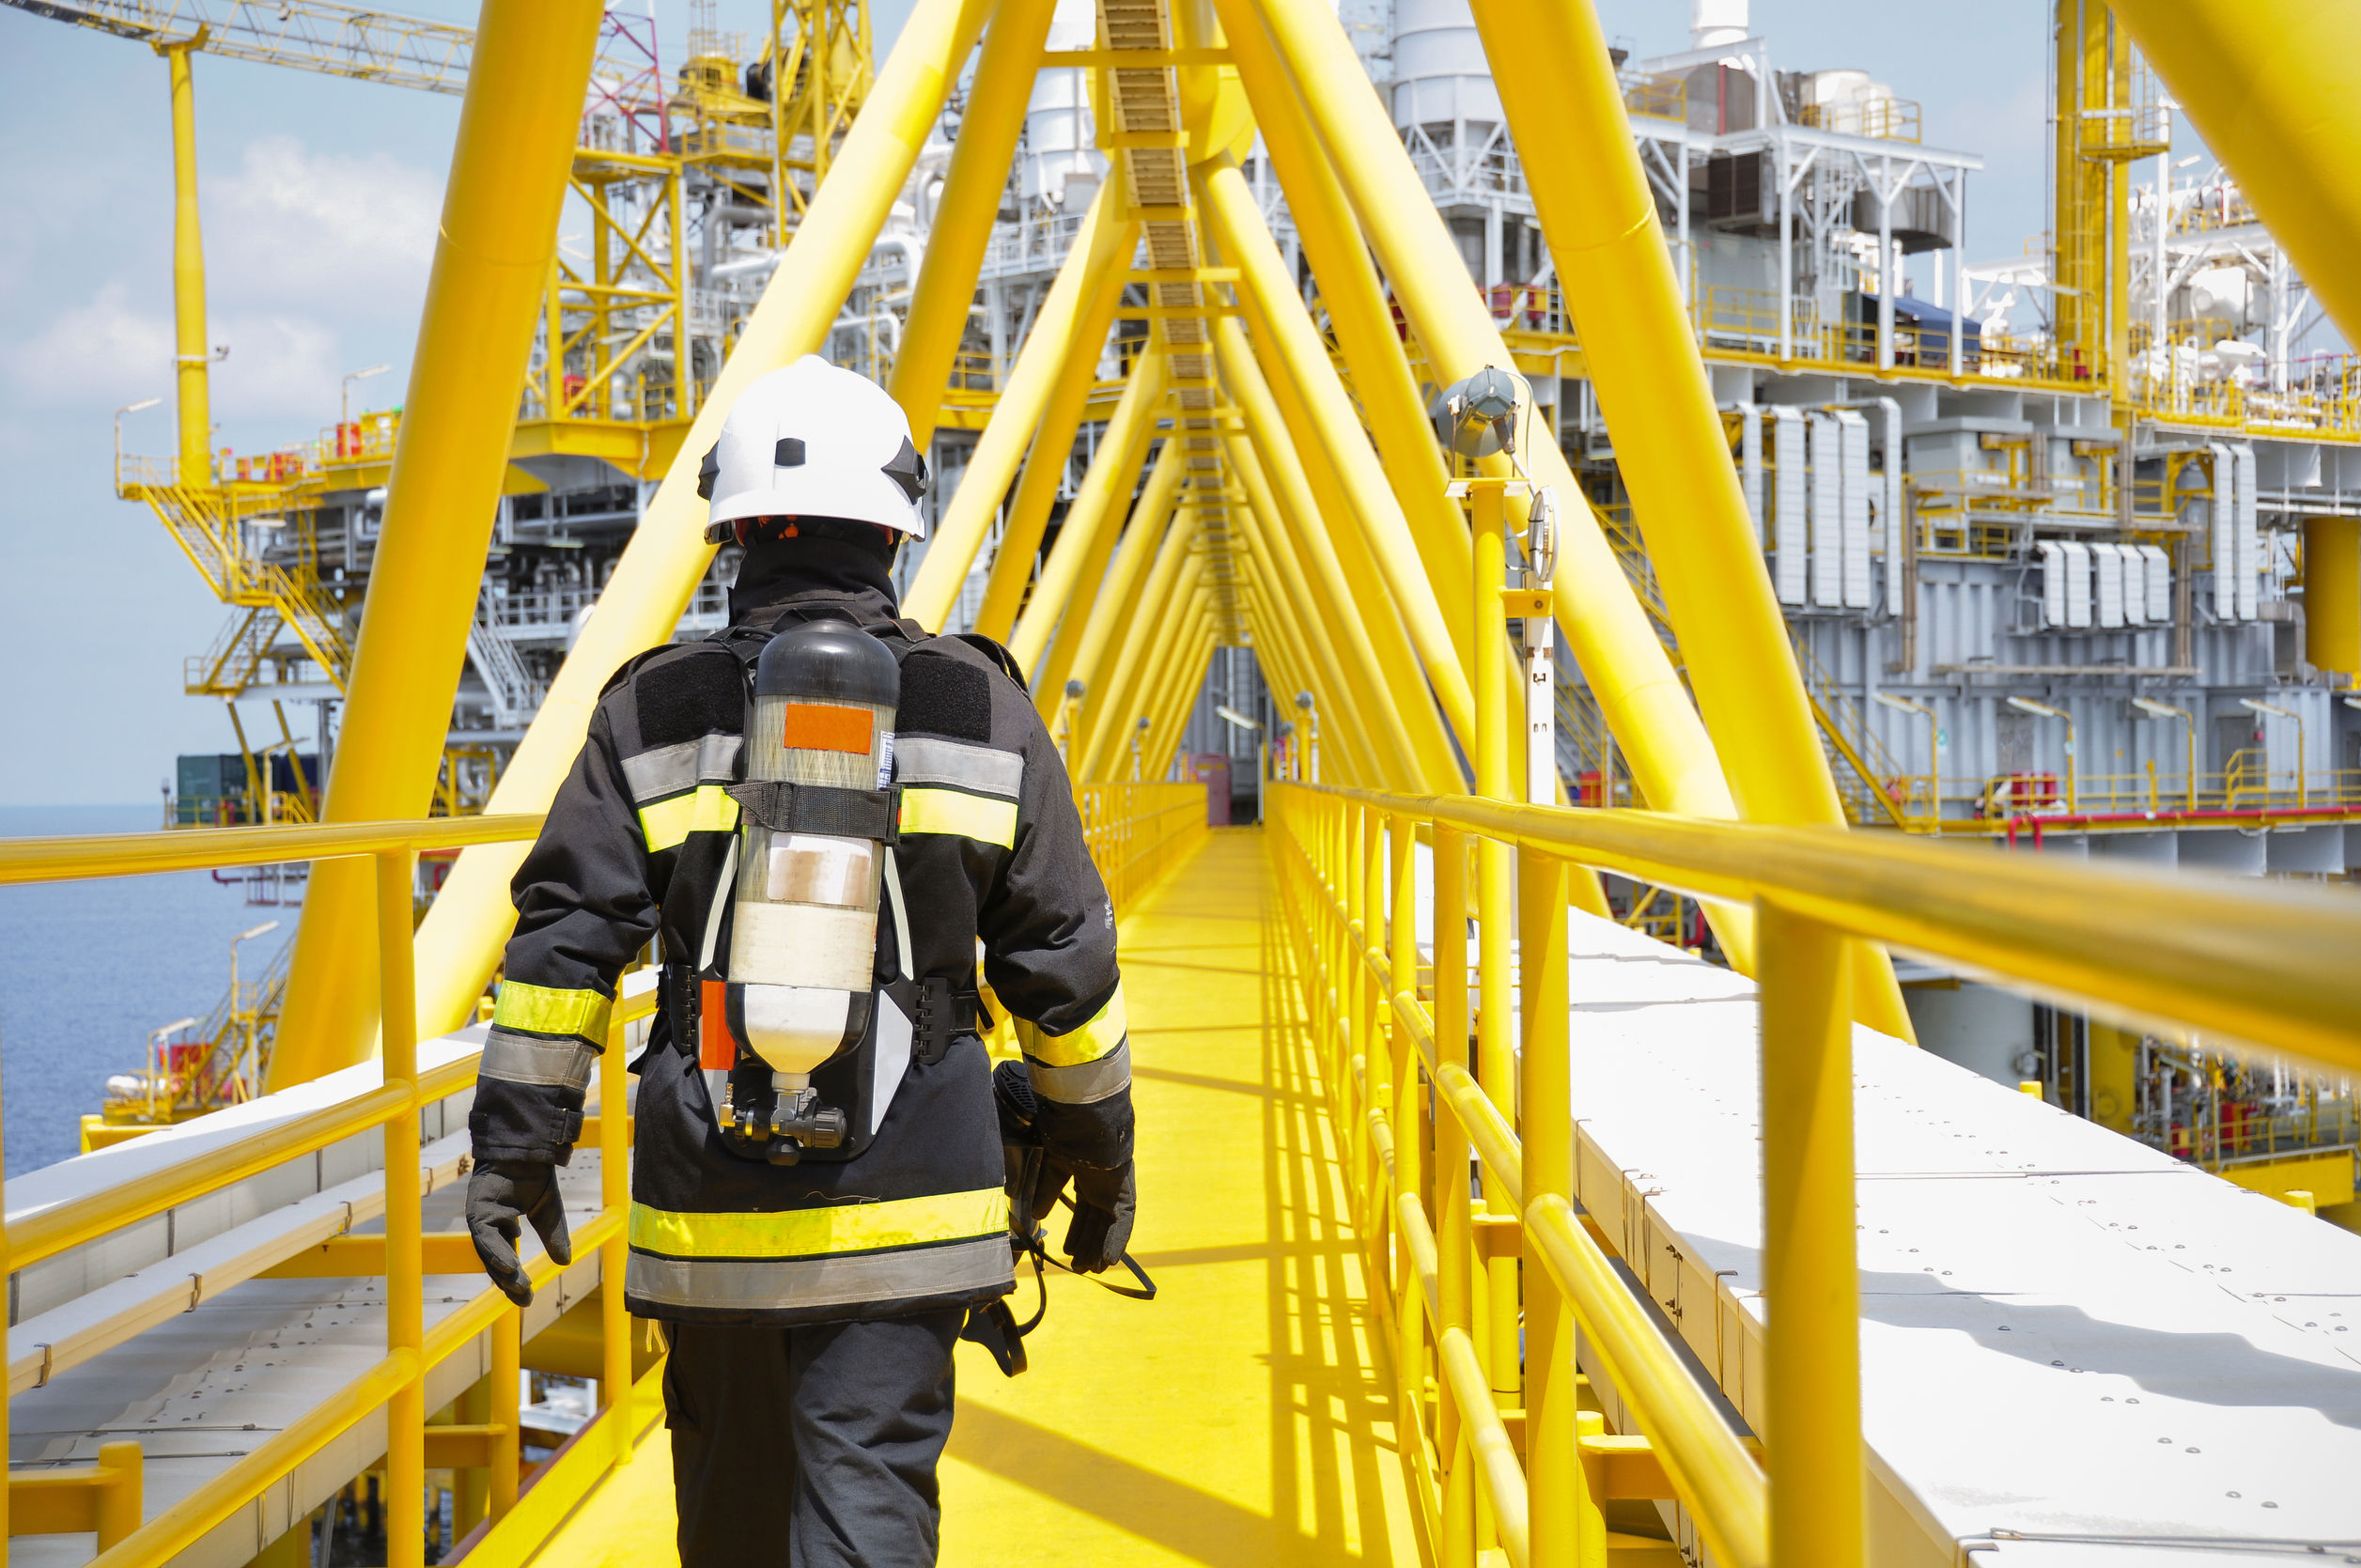 A worker in a uniform walking inside an oil rig to check for loss prevention services.